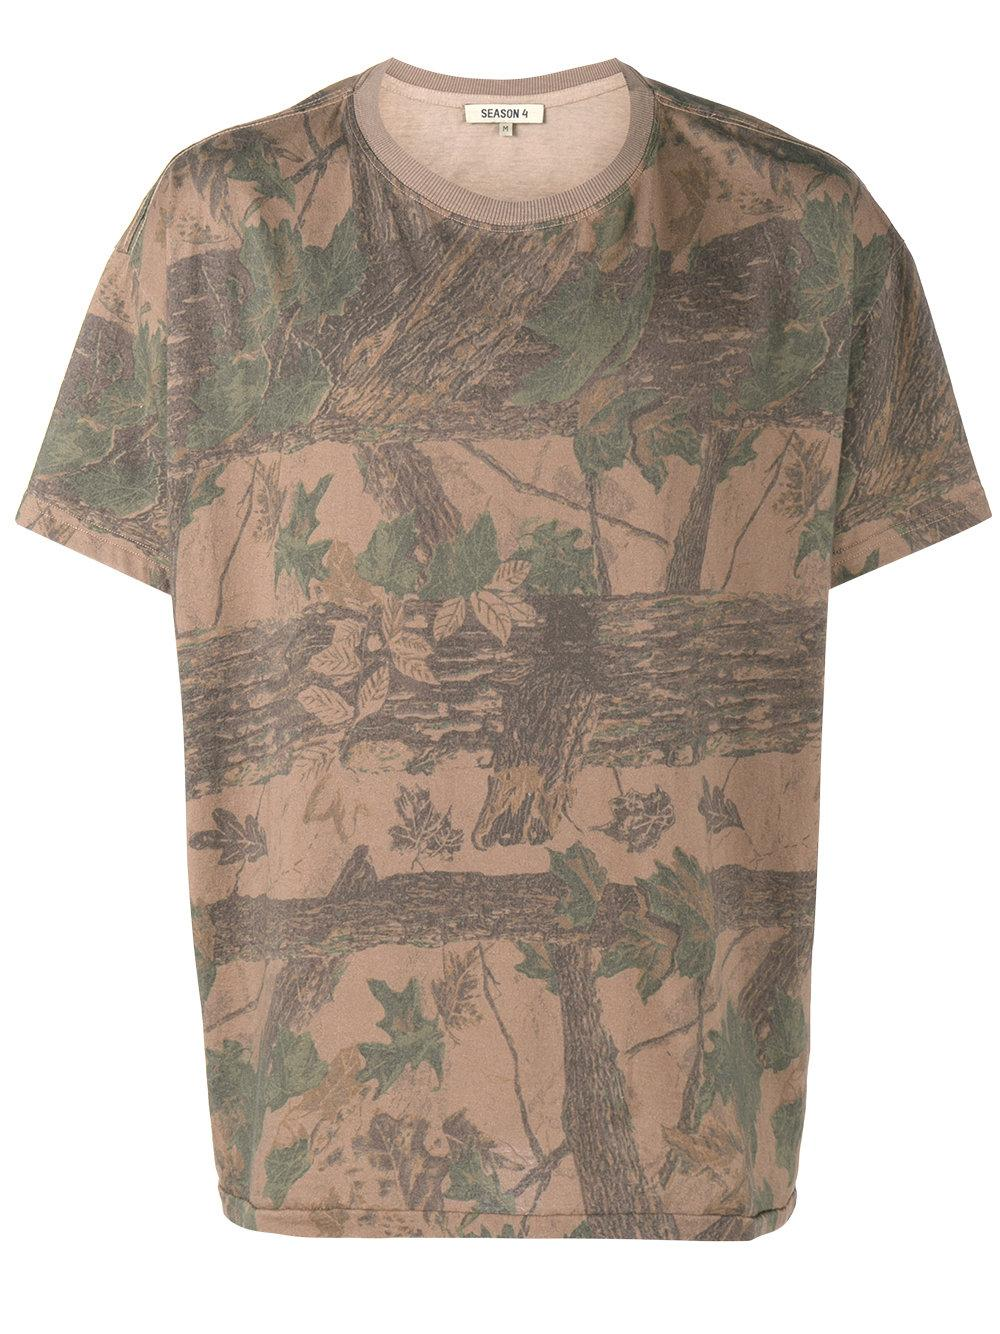 Lyst yeezy camouflage print t shirt in brown for men for Camouflage t shirt printing